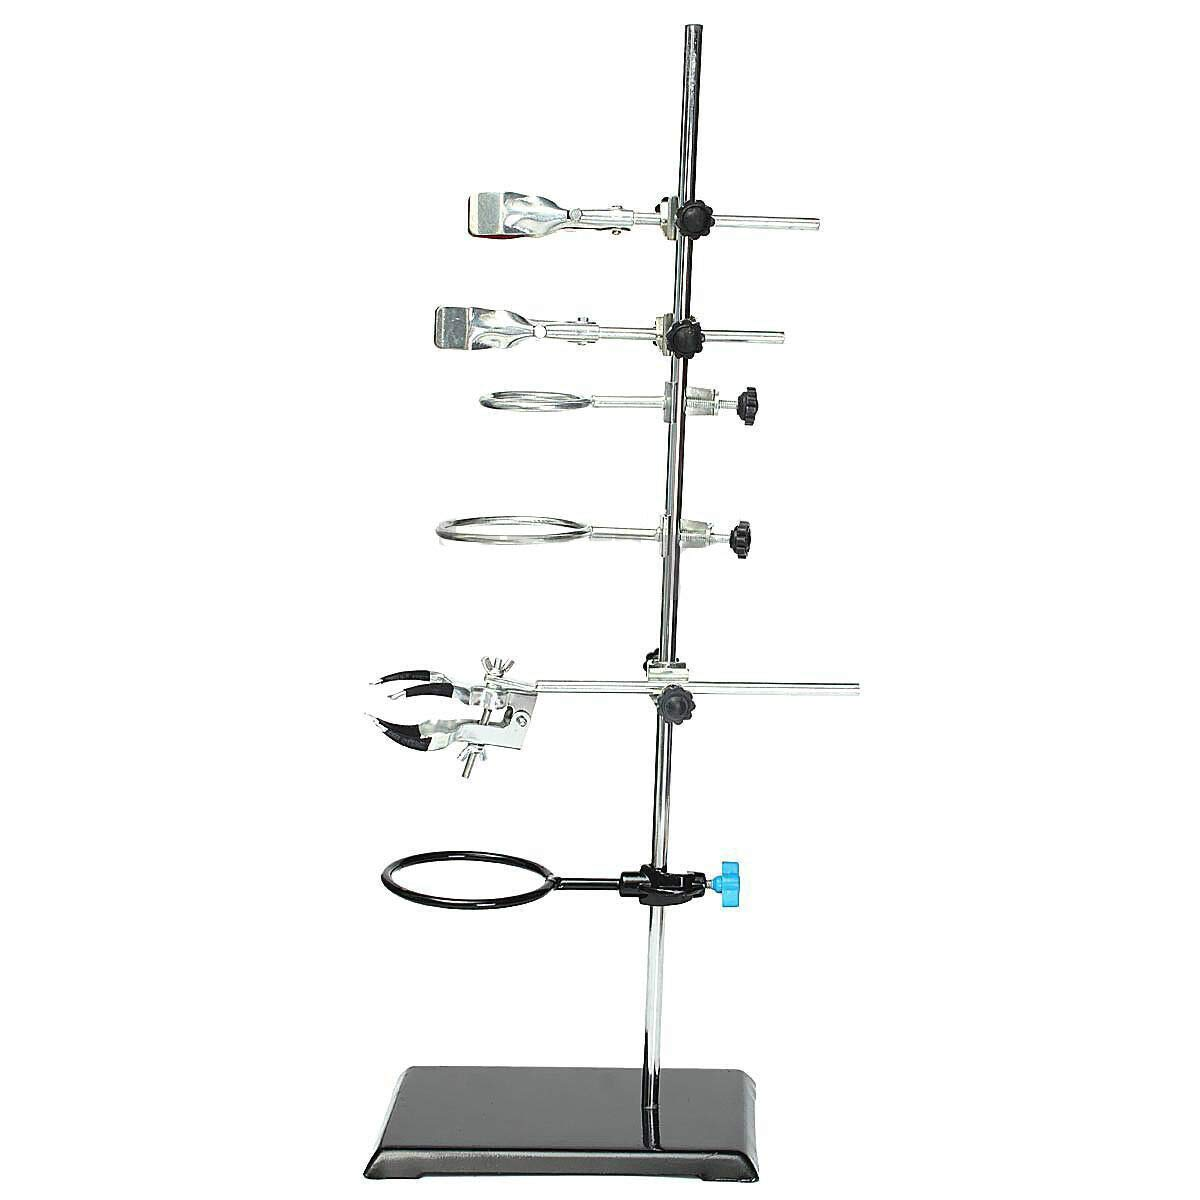 Laboratory Stands,60cm Lab Clamp Flask Condenser Pipe Support Set with Test Tube Clamp Support Rings(USA Stock)